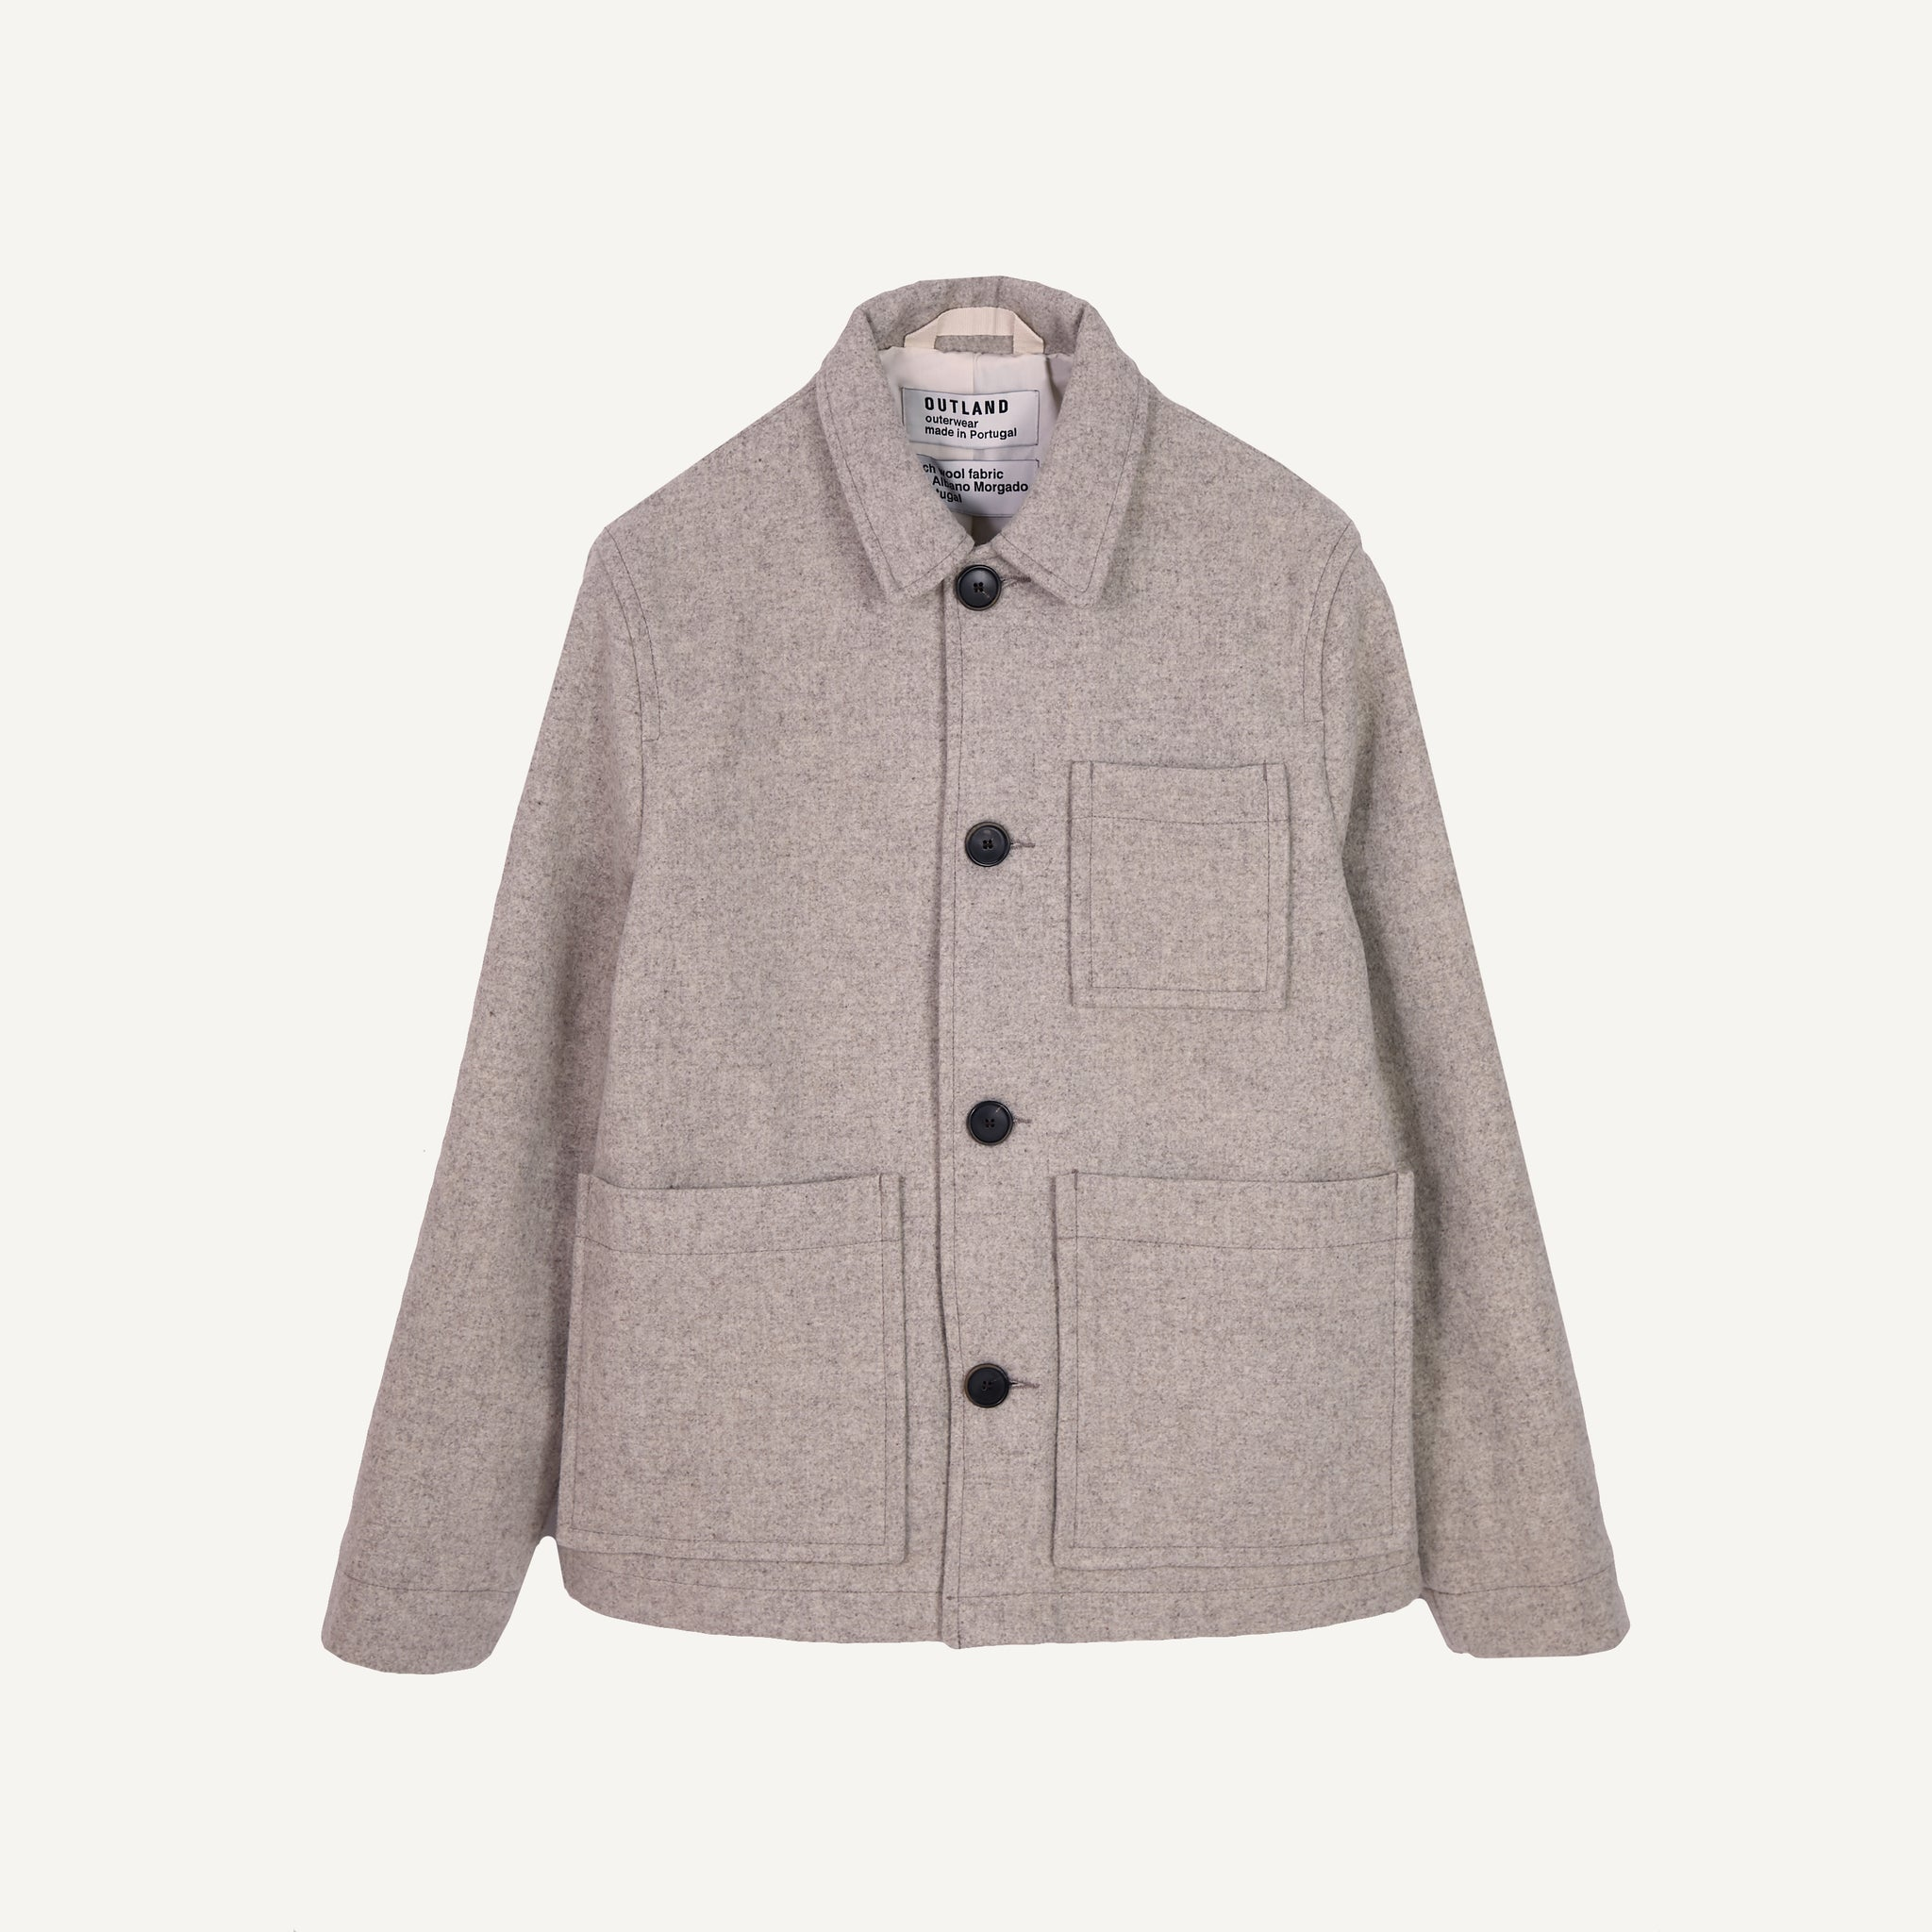 OUTLAND DUBLINER WOOL JACKET